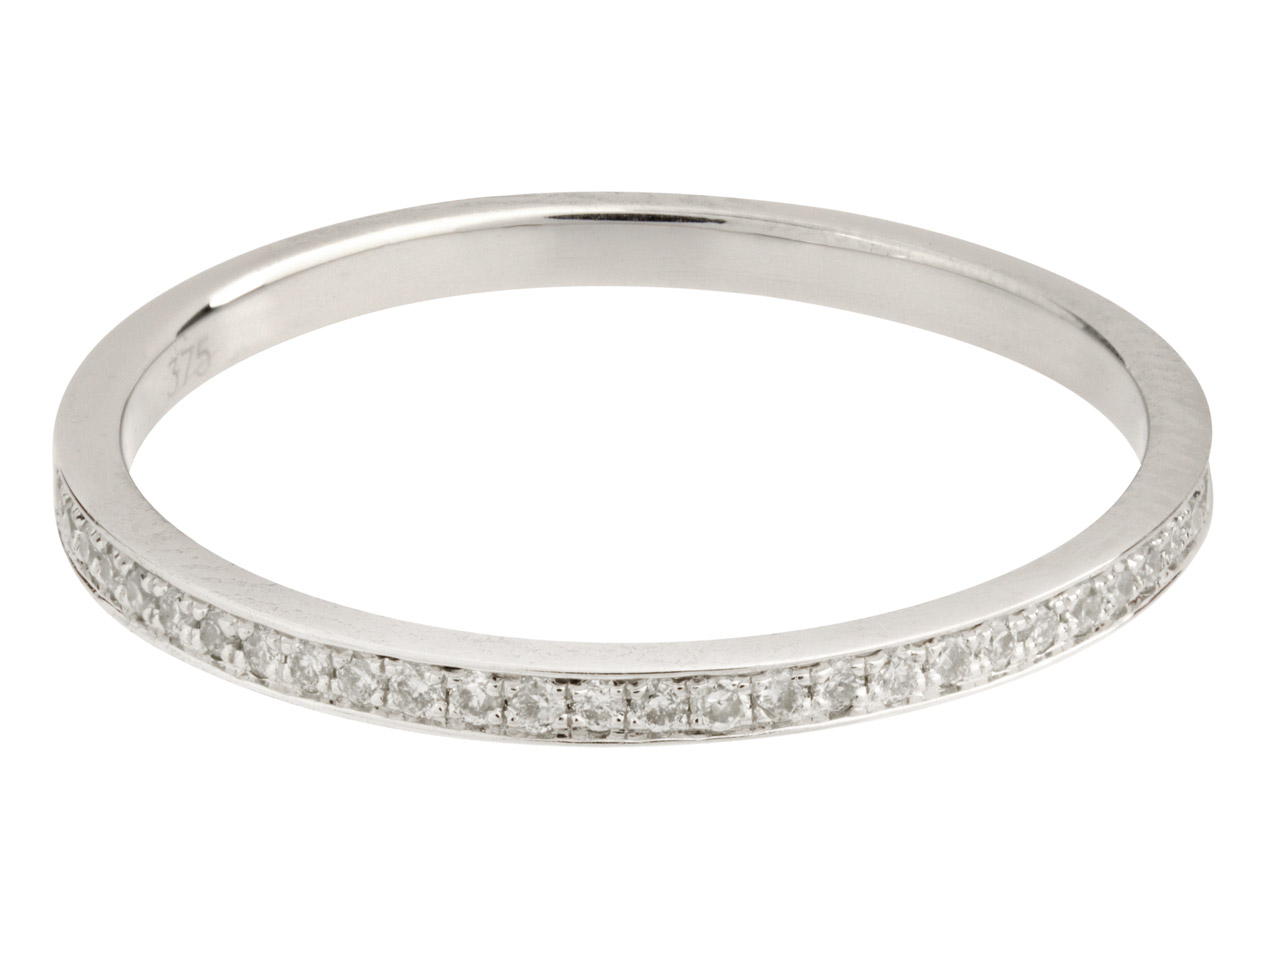 9ct White Eternity Diamond Ring,   Hallmarked 0.12cts, Grain Set,     Finger Size P